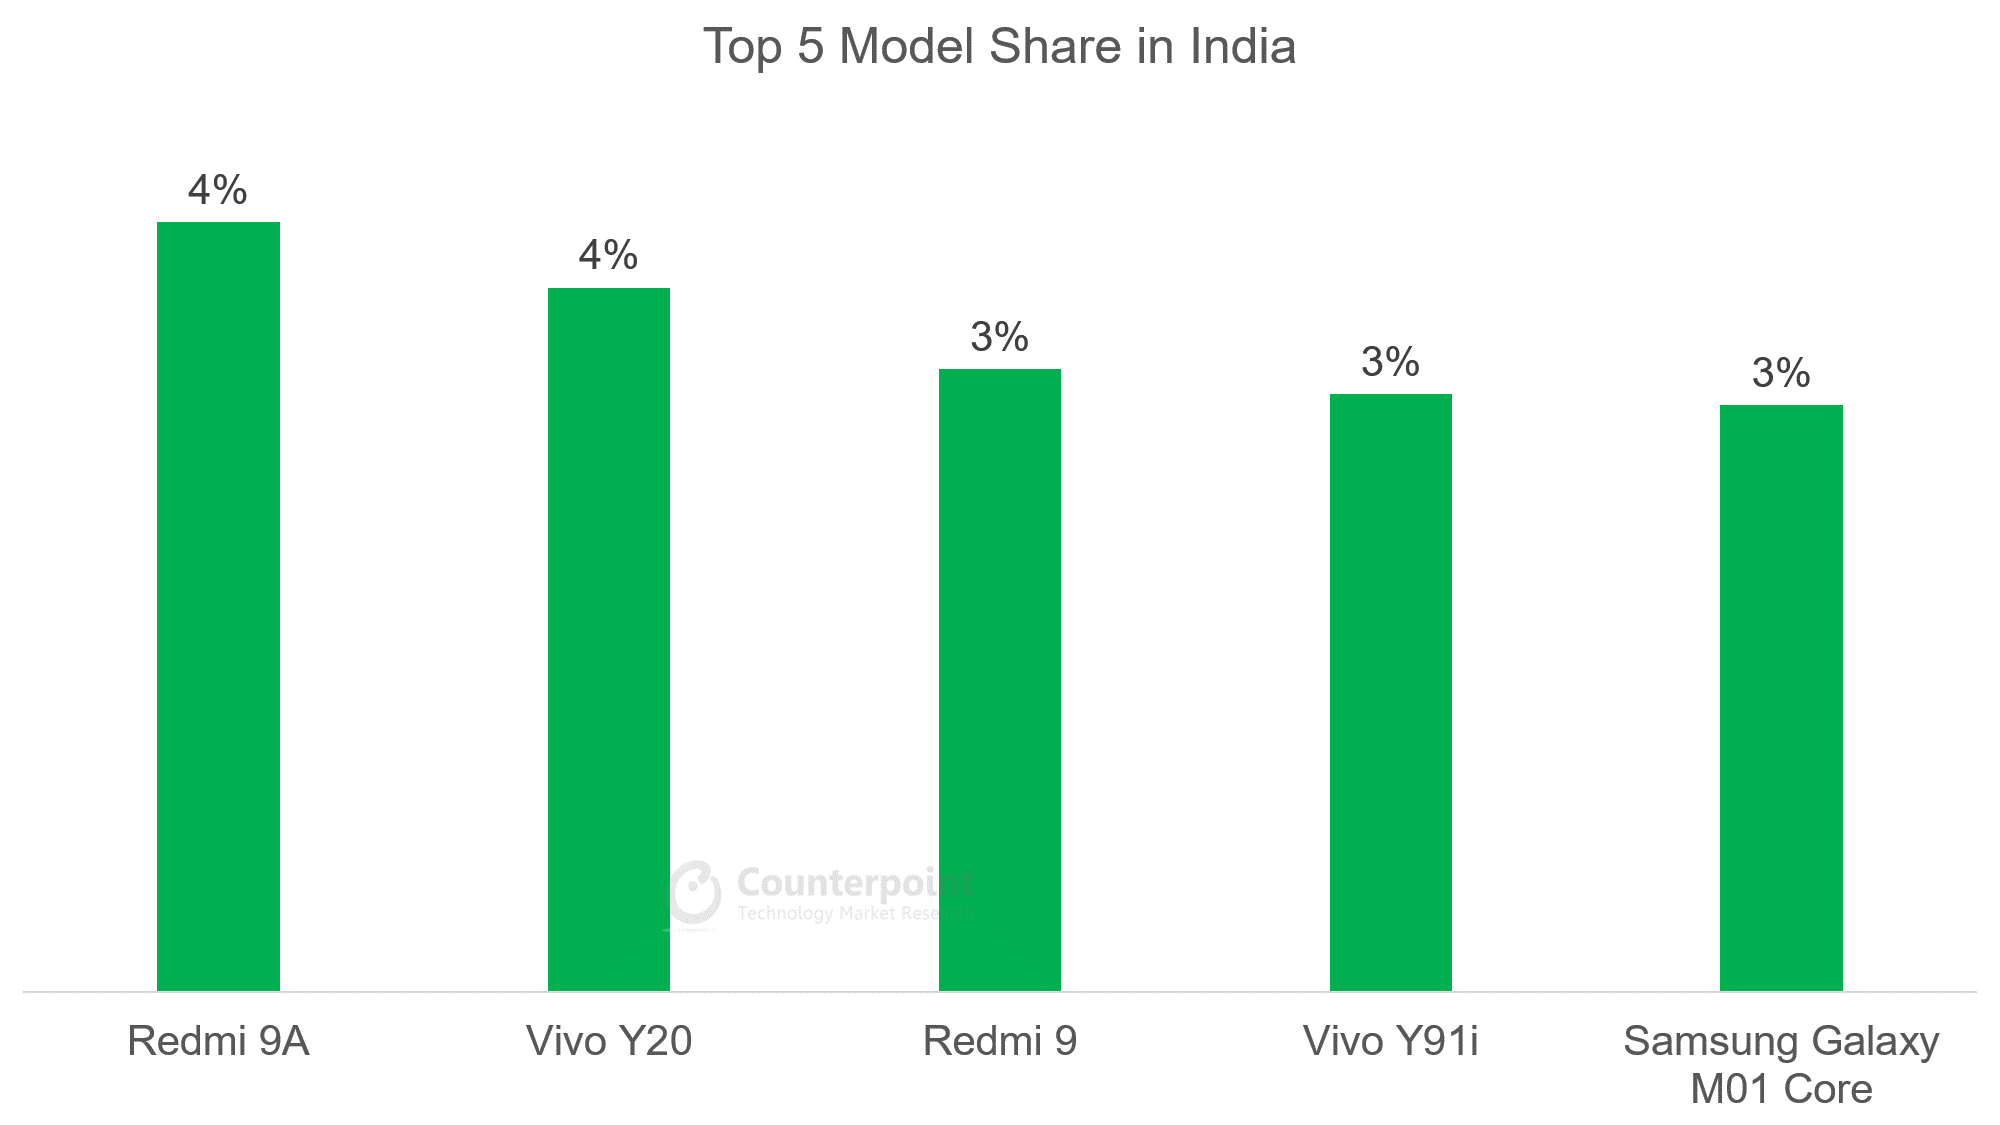 Top 5 Model Share in India - Oct 2020